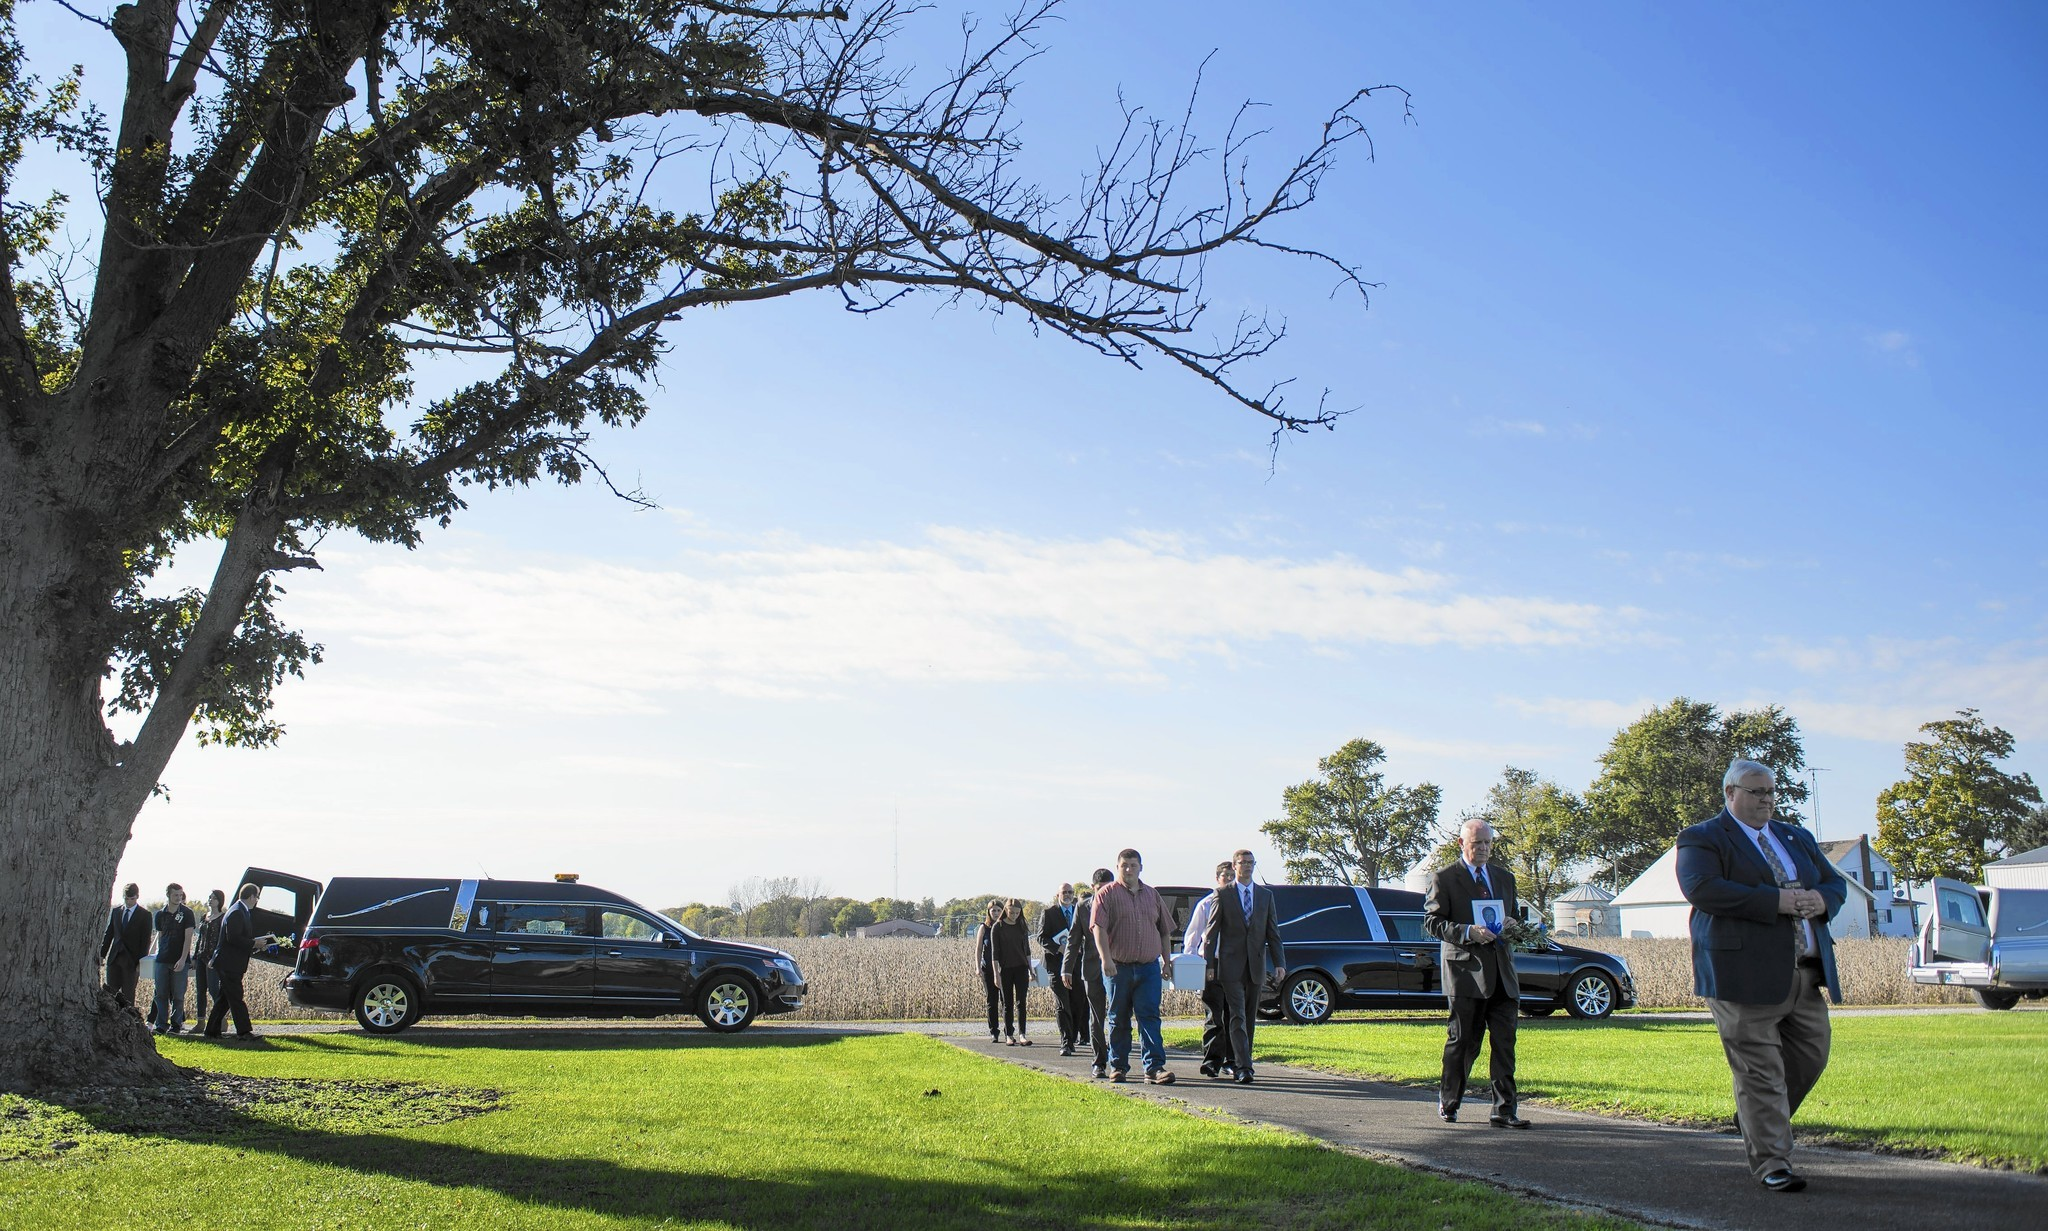 Funeral services held for 3 unidentified homicide victims